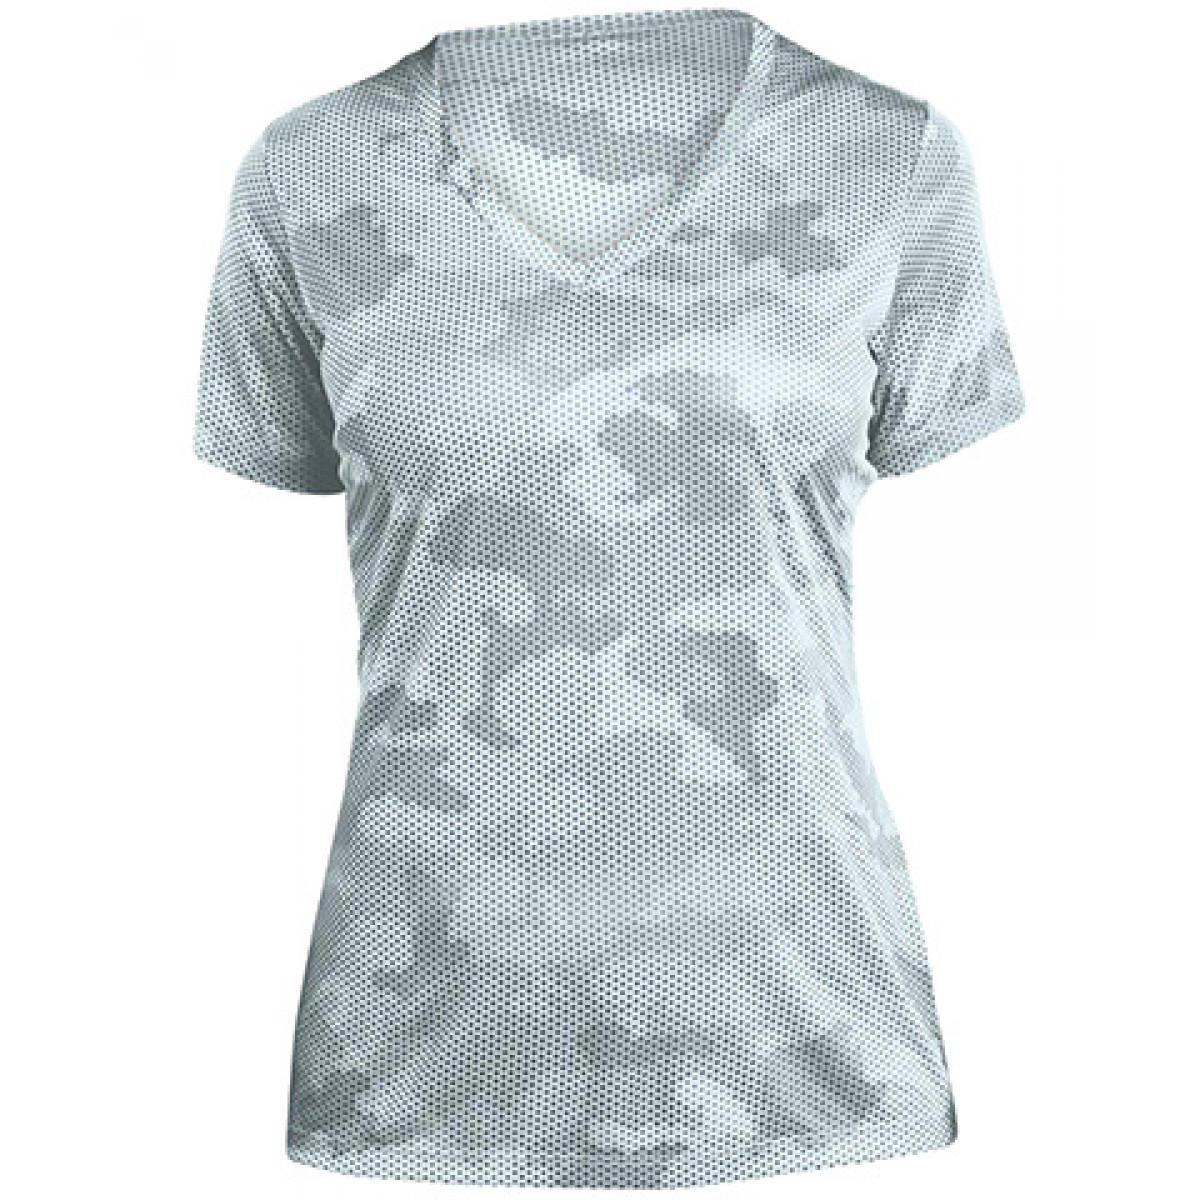 Ladies CamoHex V-Neck Tee-White-S